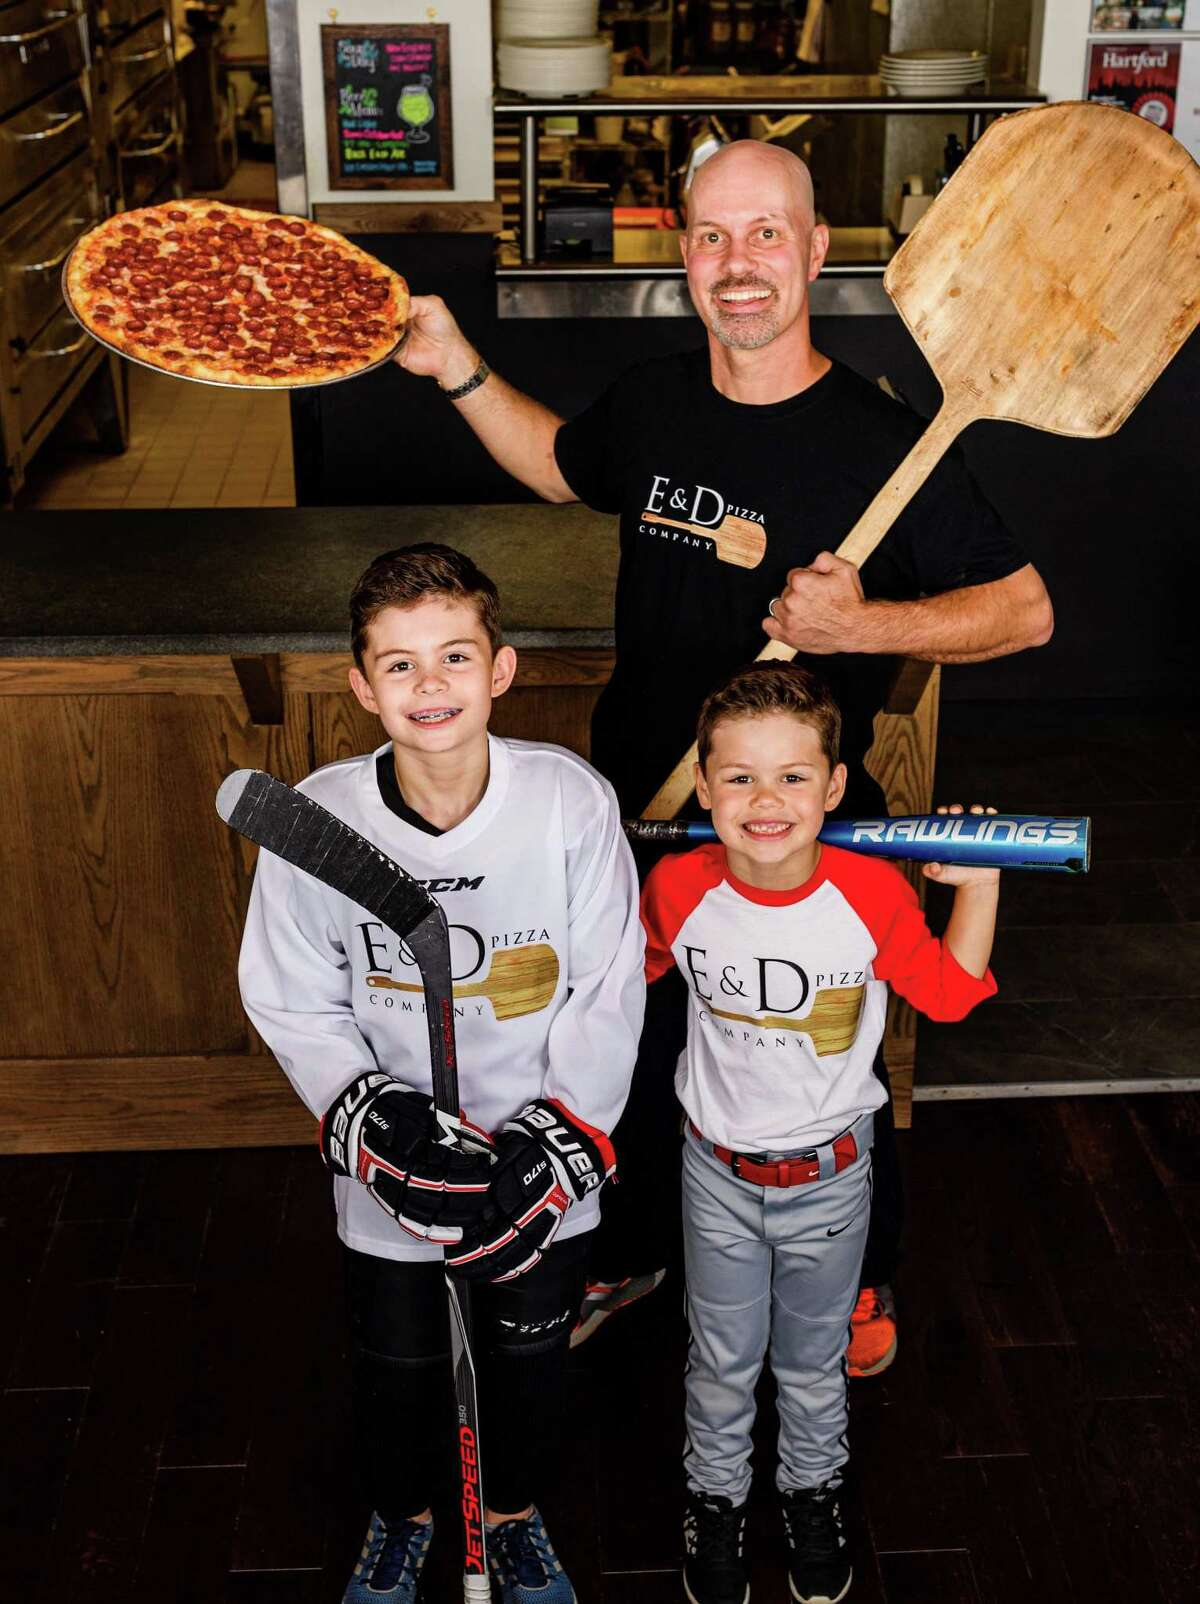 Michael Androw, the owner of E&D Pizza Company in Avon, with his sons Enzo and Dario, for whom the restaurant is named.